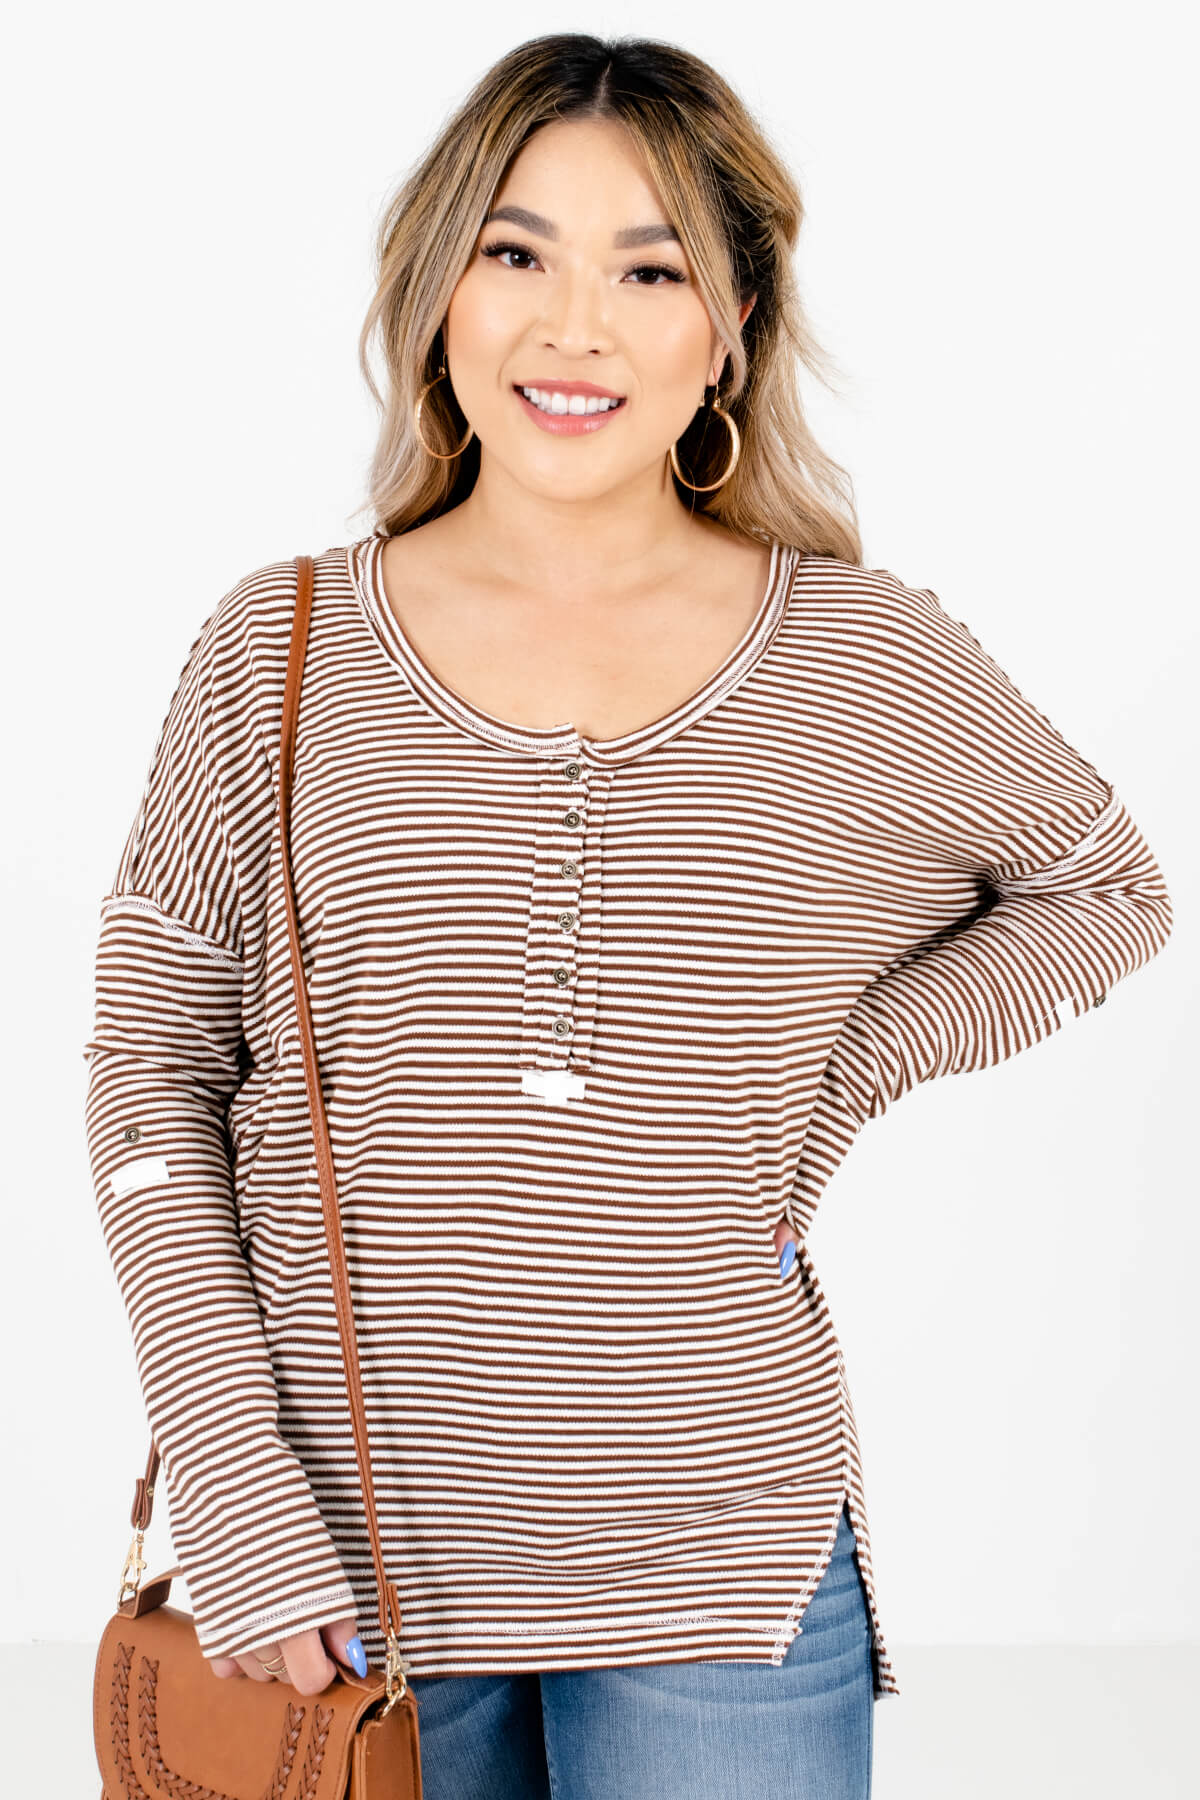 Brown and White Striped Boutique Tops for Women